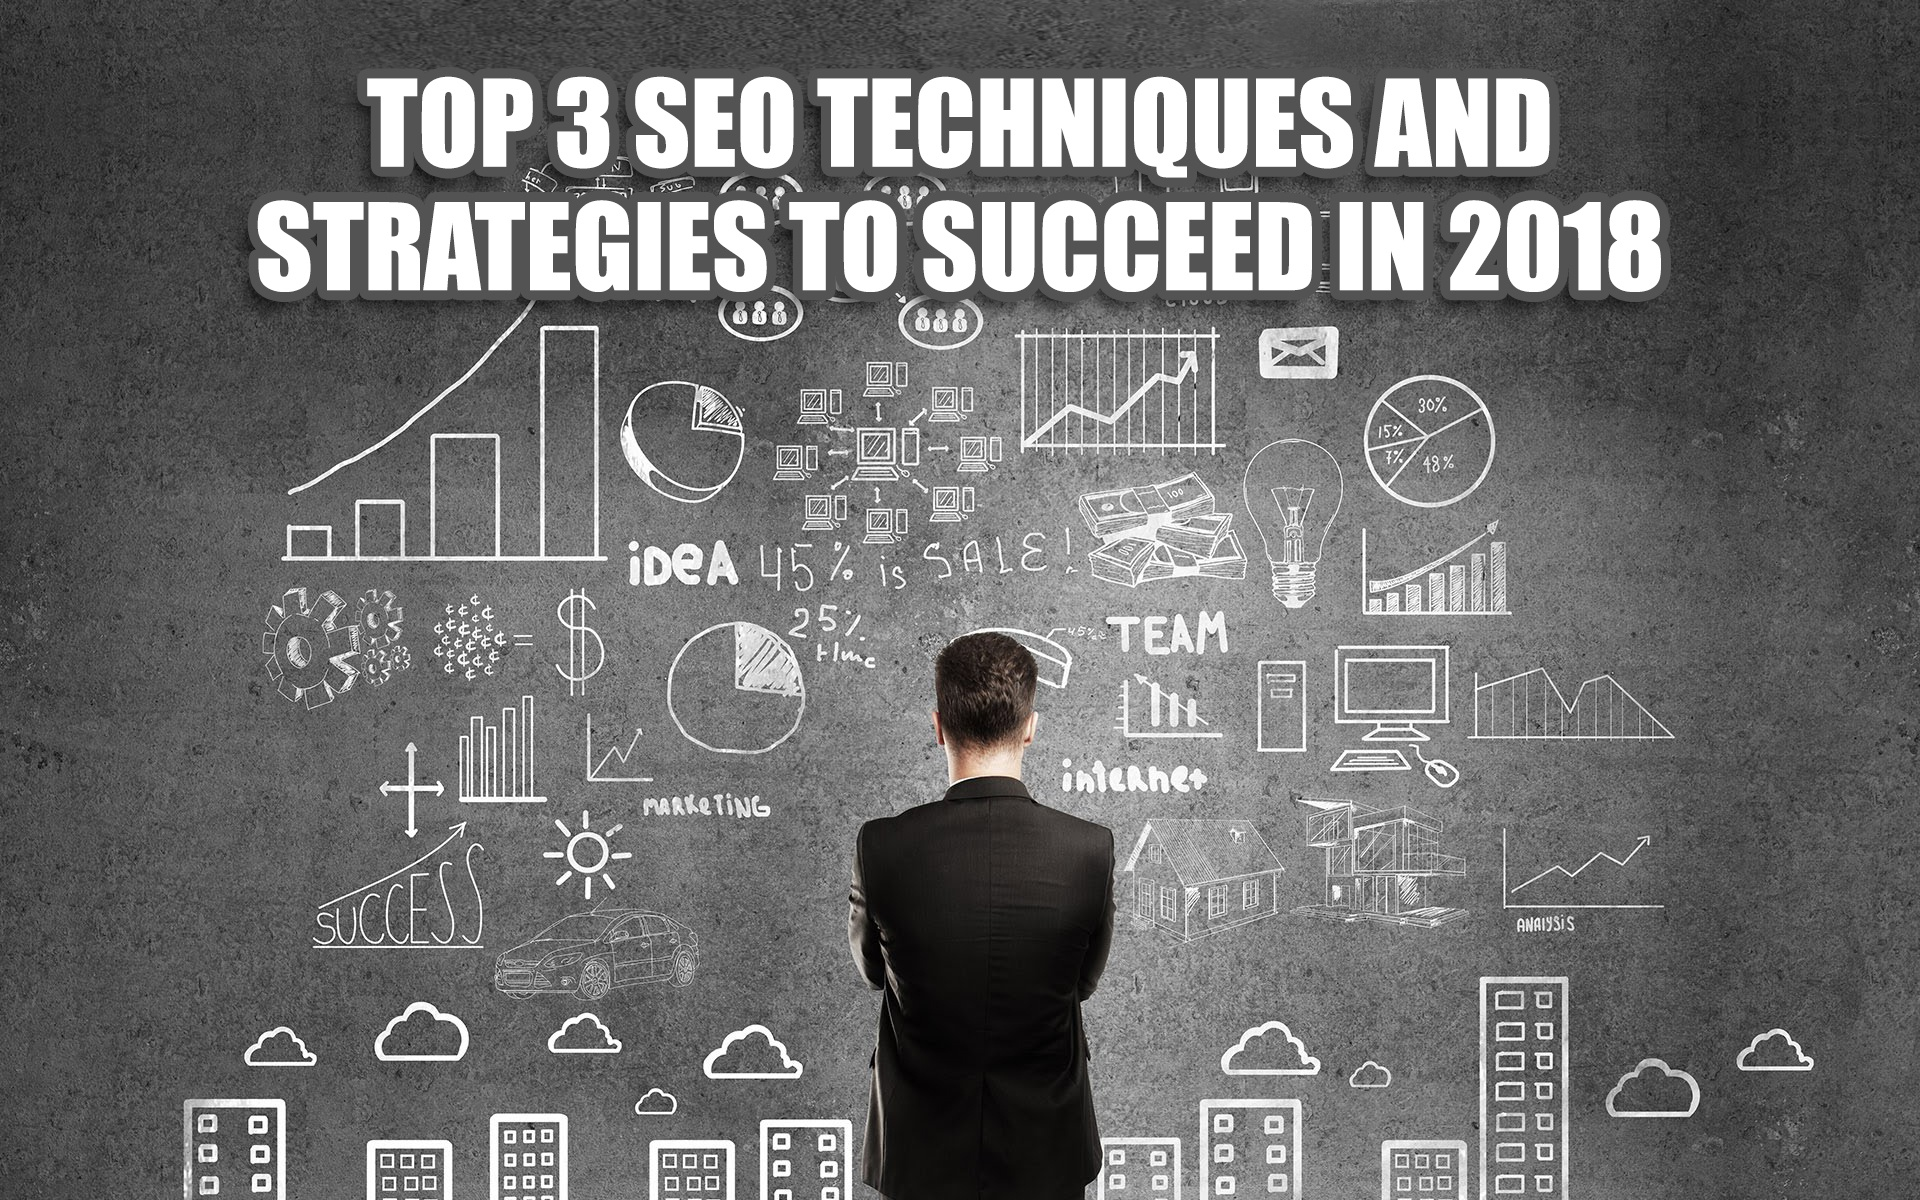 Top 3 SEO Techniques and Strategies to Succeed in 2018